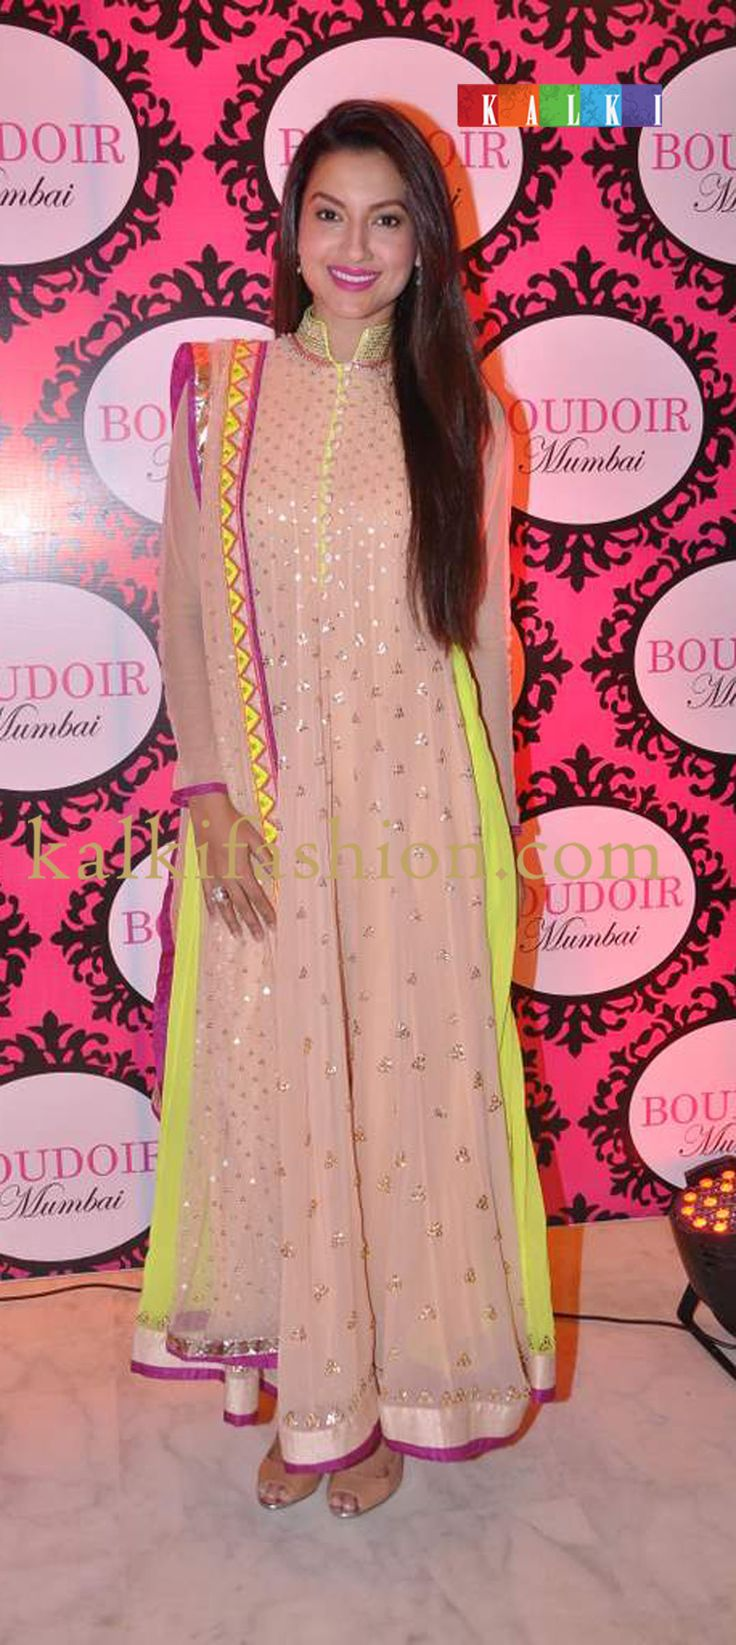 http://www.kalkifashion.com/ Gauhar Khan in anarkali outfit by Kanika Kedia at her store Boudoir Mumbai